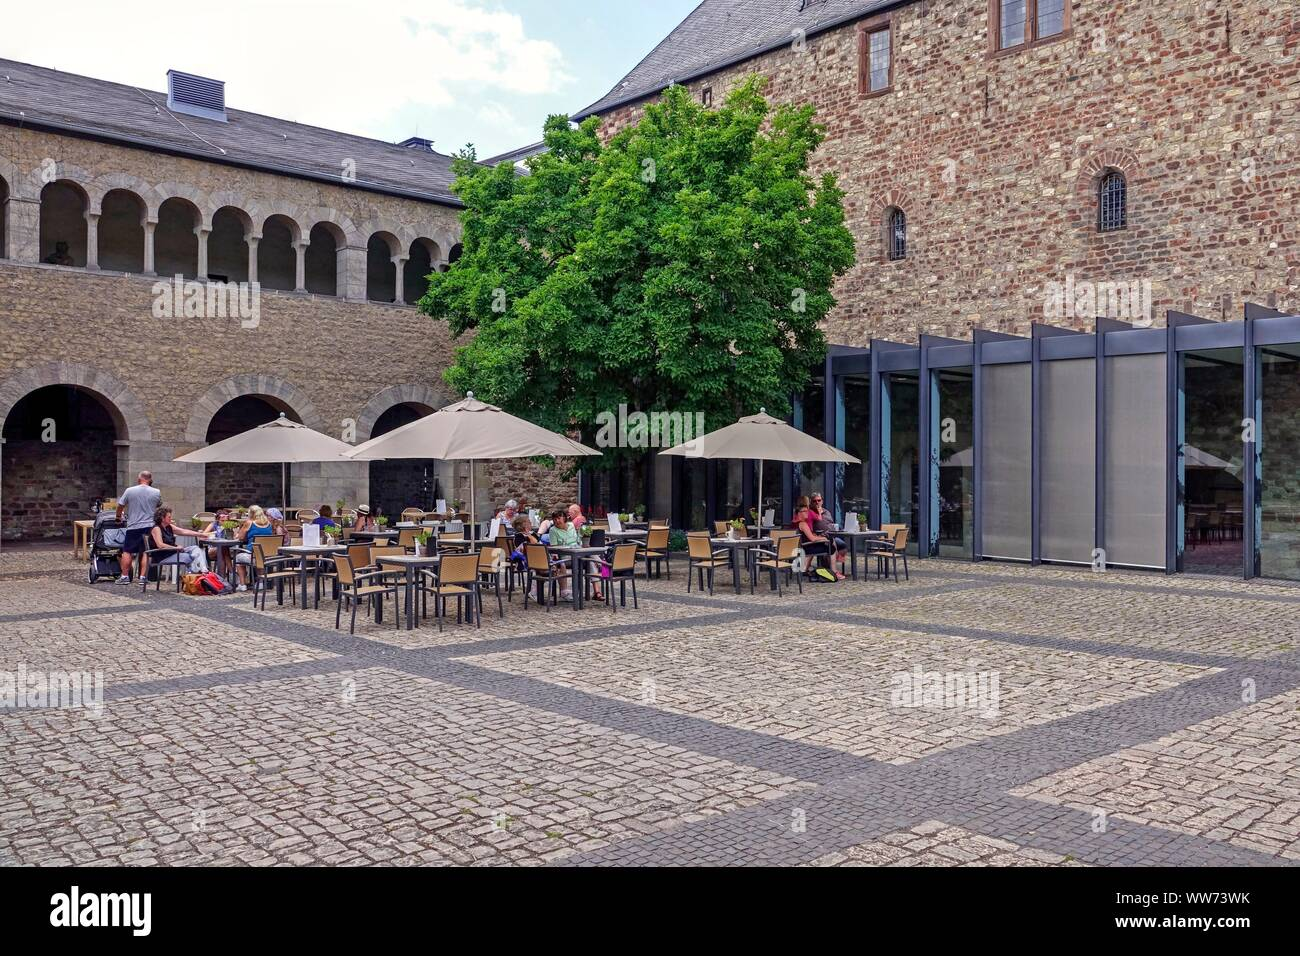 Café in the courtyard of the Simeonstift City Museum, Simeonstift Square, Trier, Rhineland-Palatinate, Germany Stock Photo